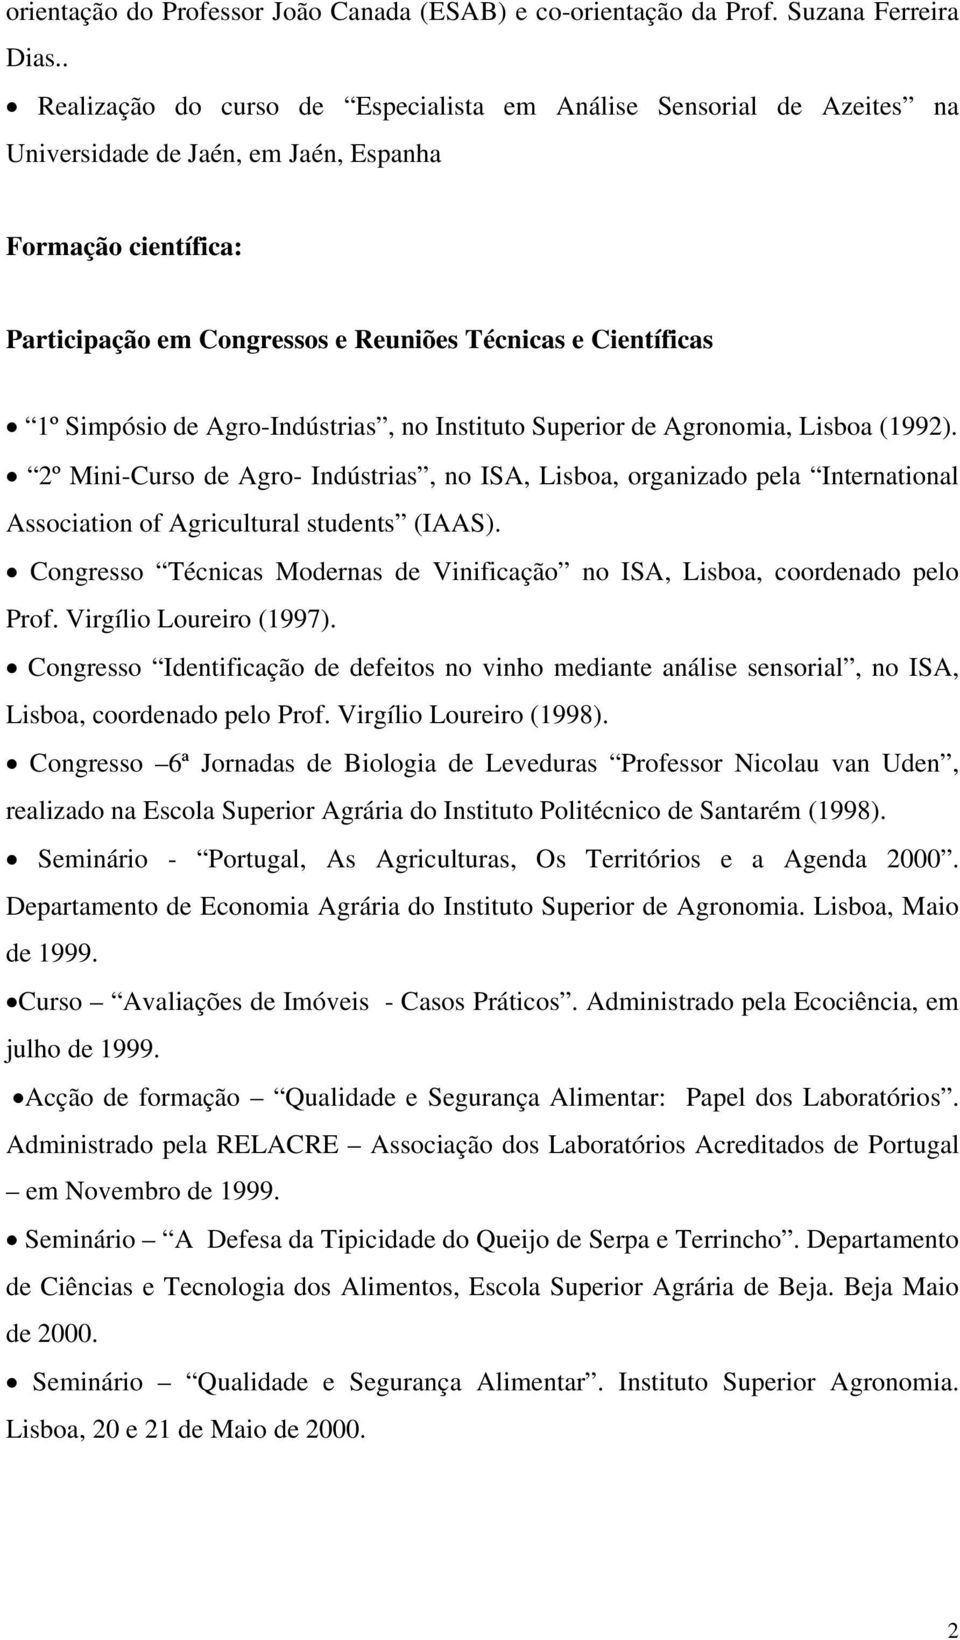 Agro-Indústrias, no Instituto Superior Agronomia, Lisboa (1992). 2º Mini-Curso Agro- Indústrias, no ISA, Lisboa, organizado pela International Association of Agricultural stunts (IAAS).